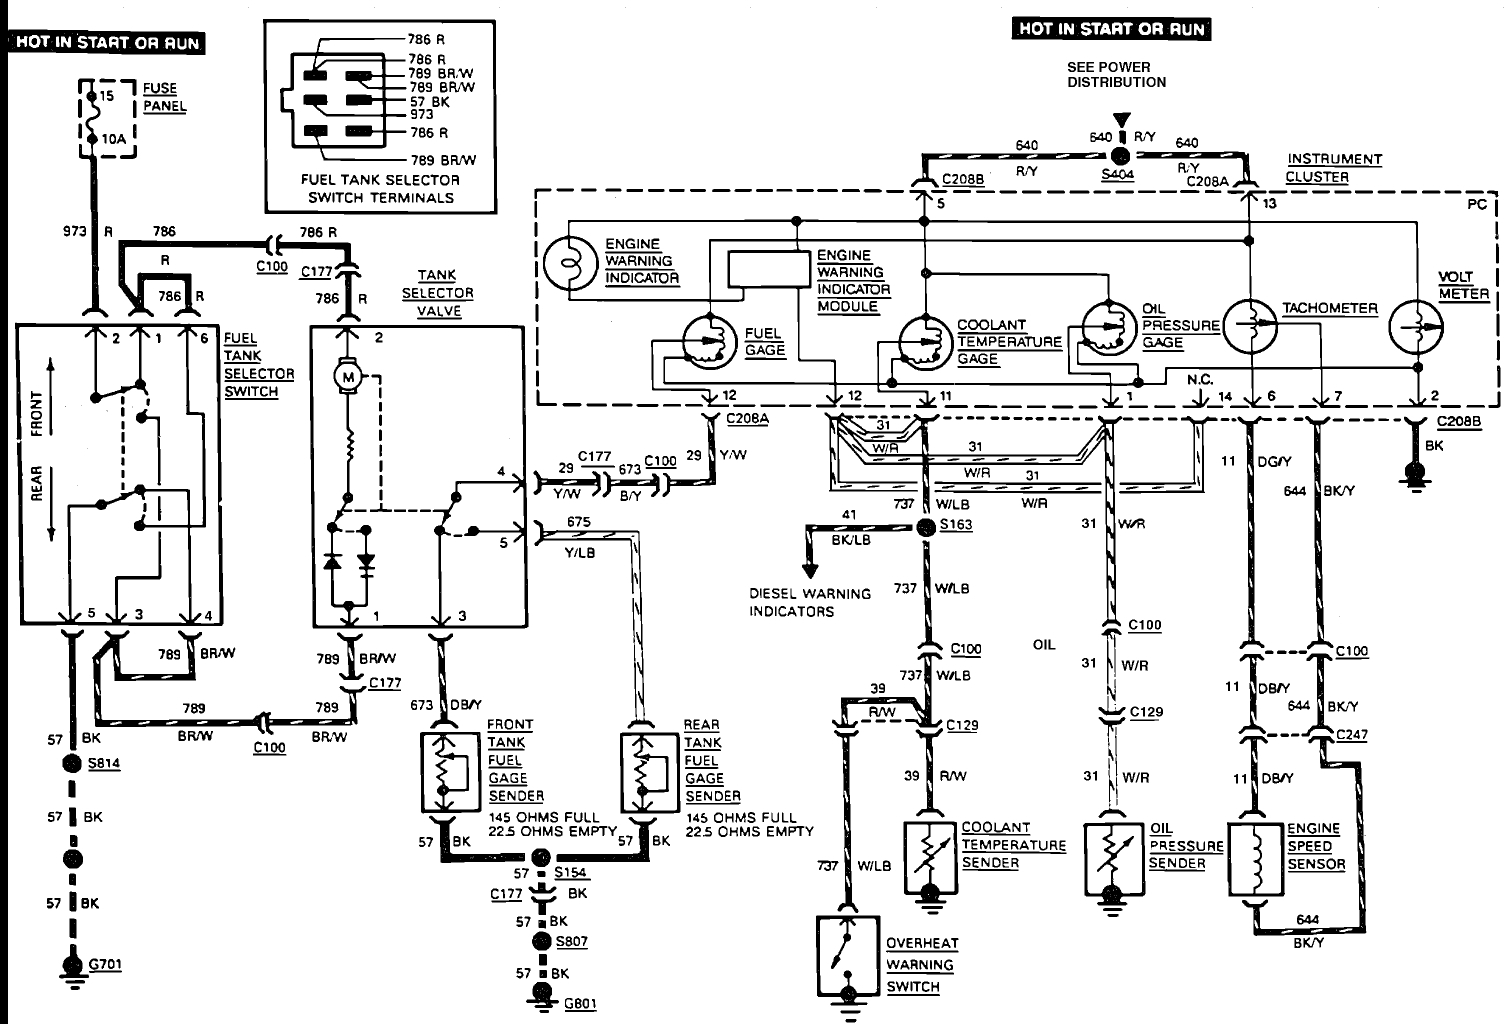 hight resolution of 1990 ford f 350 wiring diagram wiring diagram database diagram also truck air conditioning system diagram on 1986 ford f 150